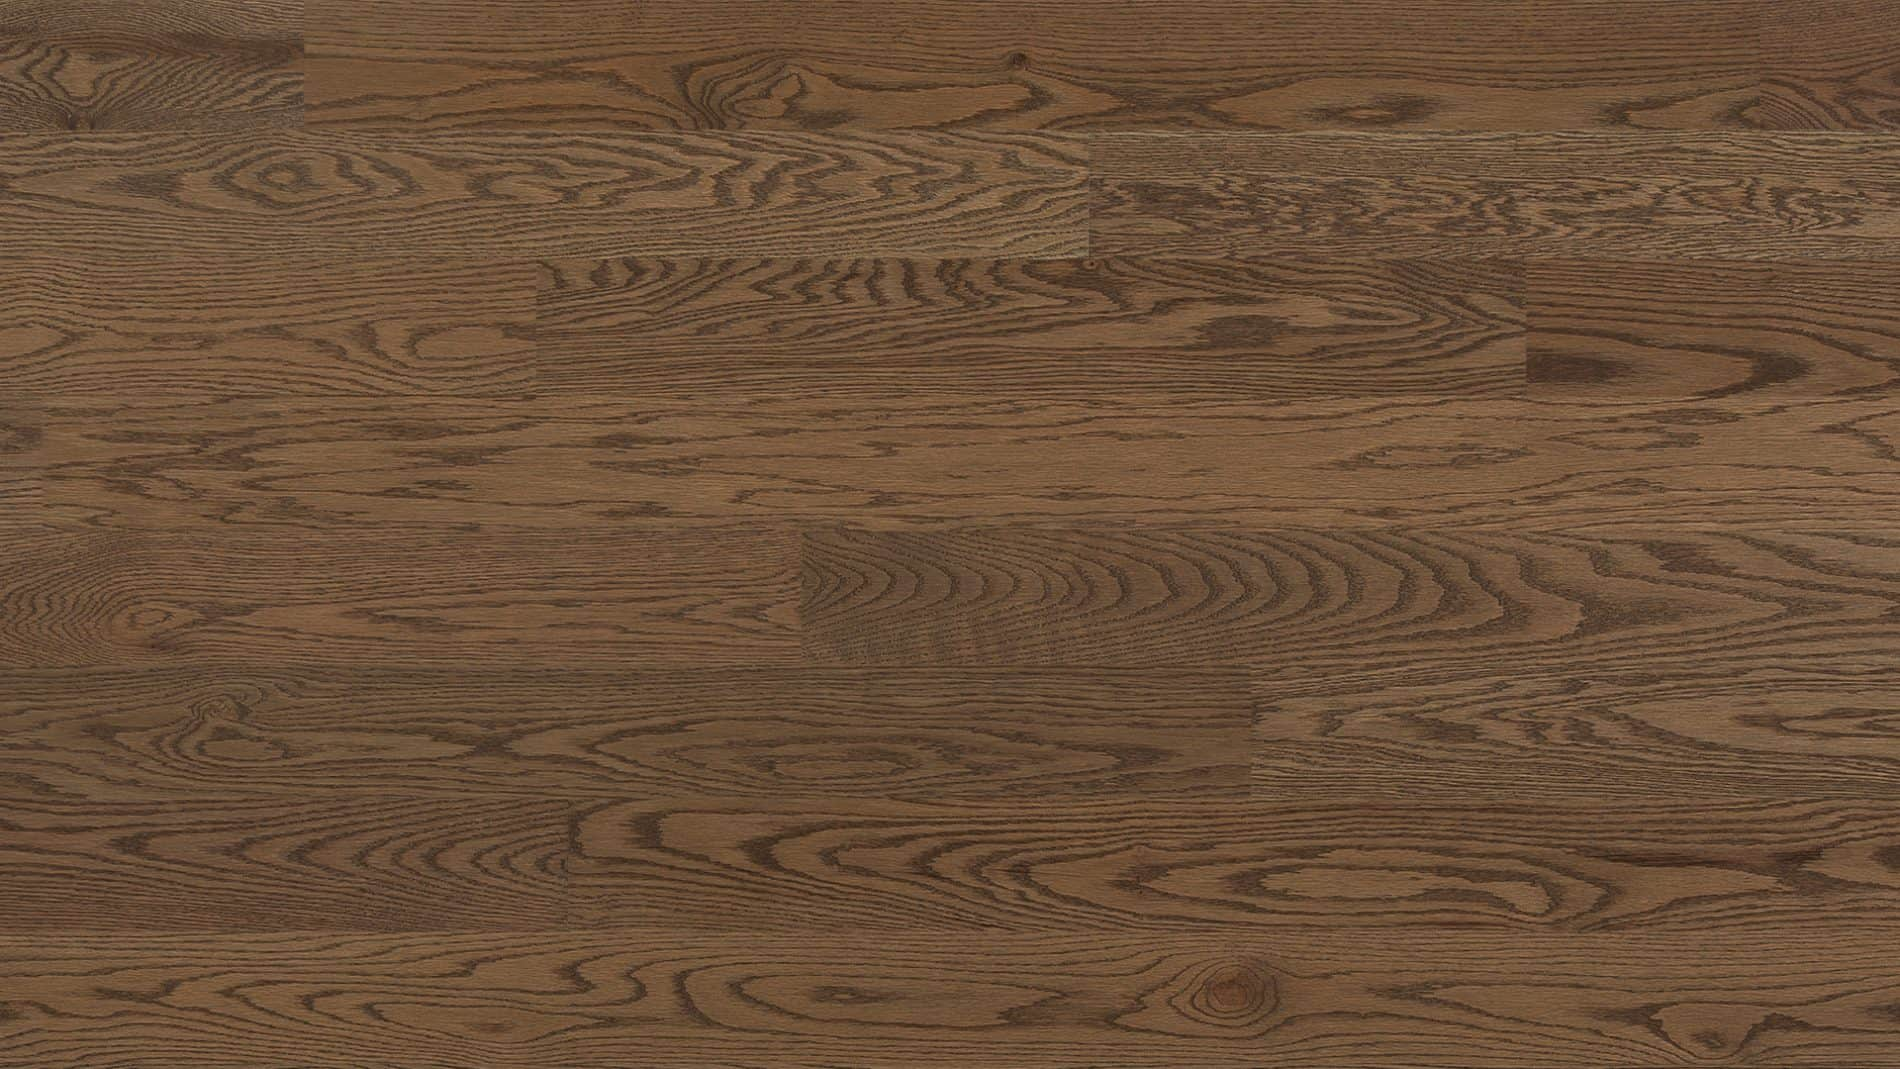 Hardwood floor | Red oak wire brushed stone